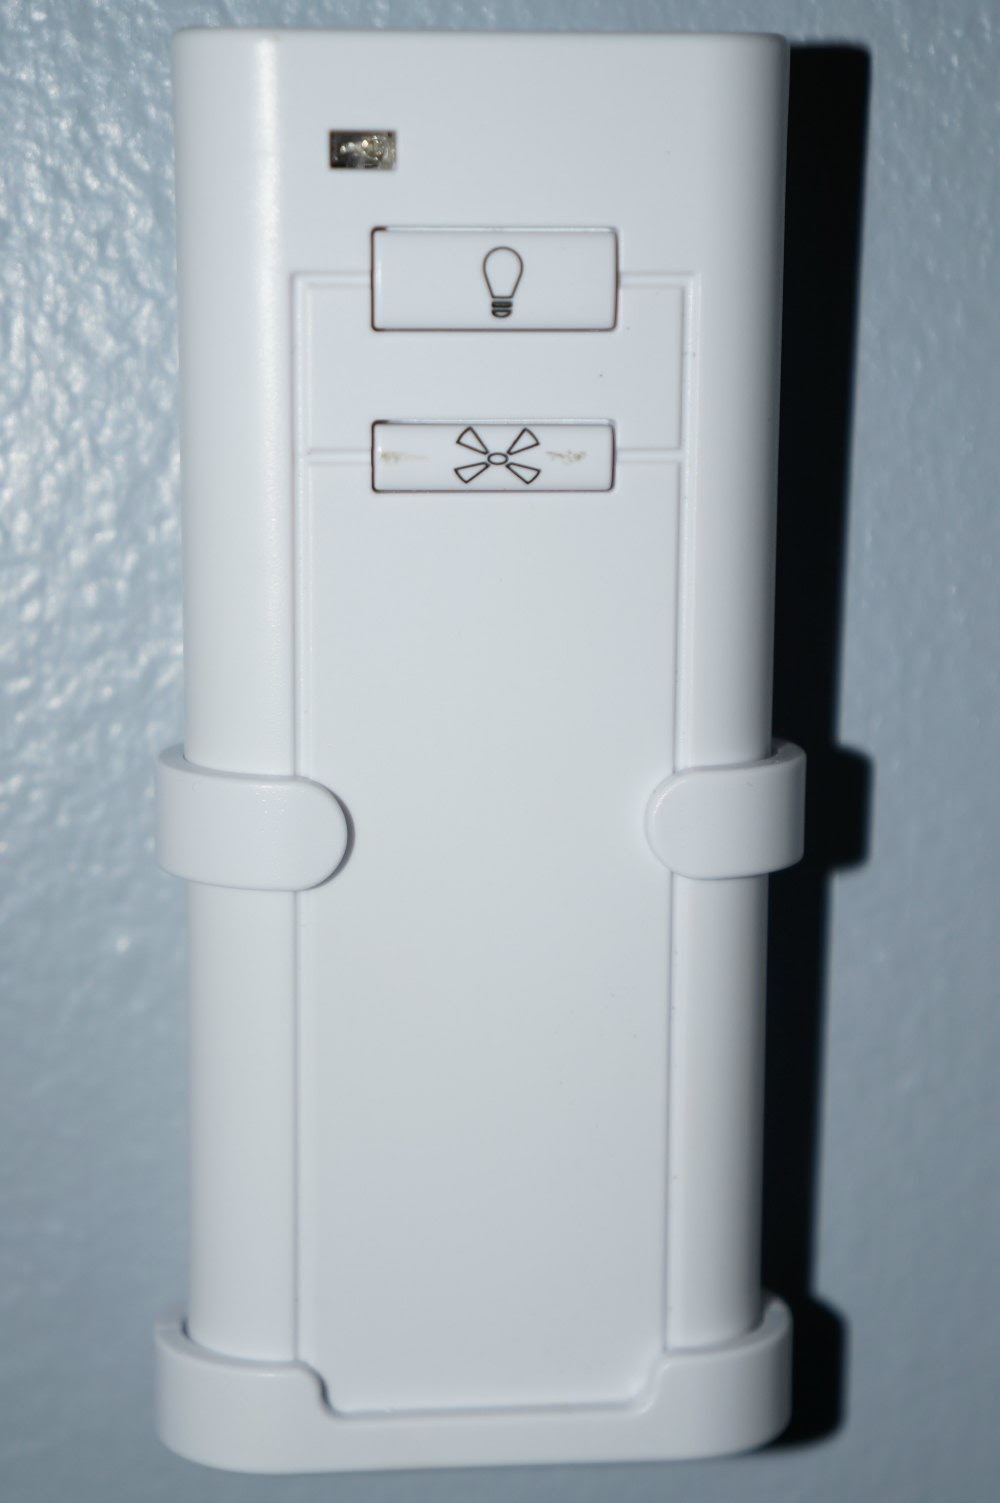 Bedroom Light Switch Near Bed